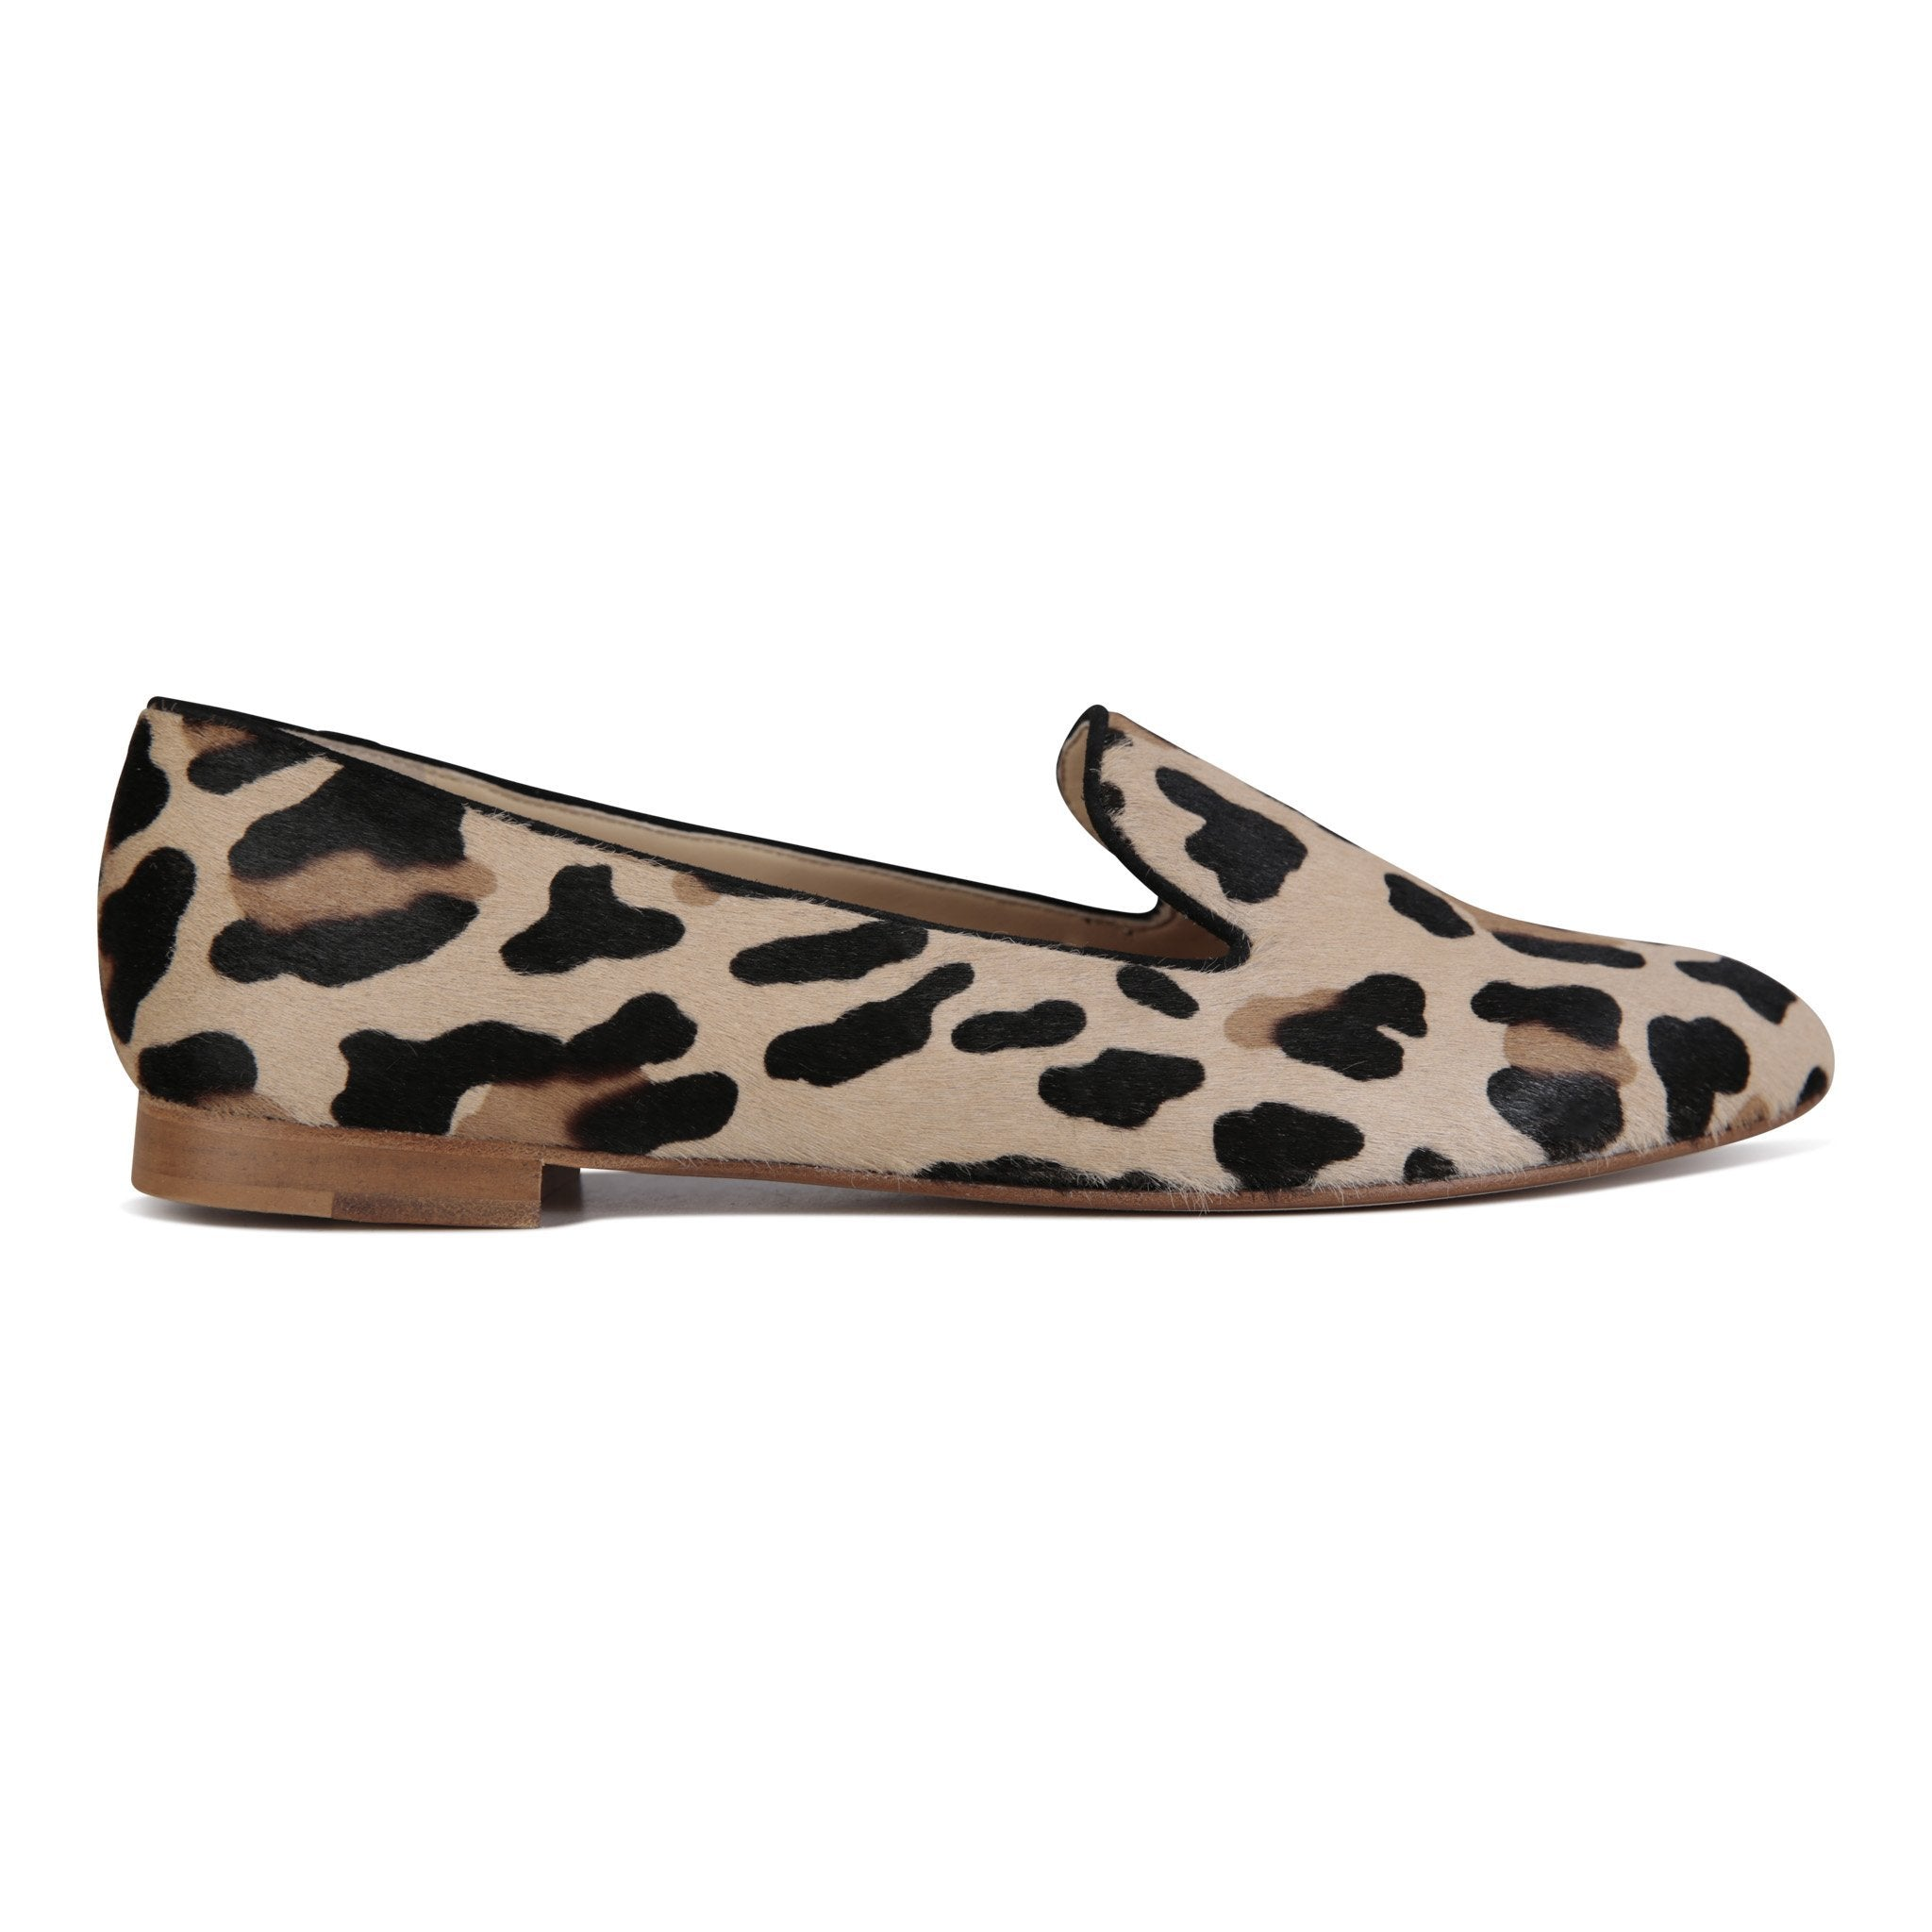 RAVENNA - Calf Hair Leopard + Velukid Nero, VIAJIYU - Women's Hand Made Sustainable Luxury Shoes. Made in Italy. Made to Order.